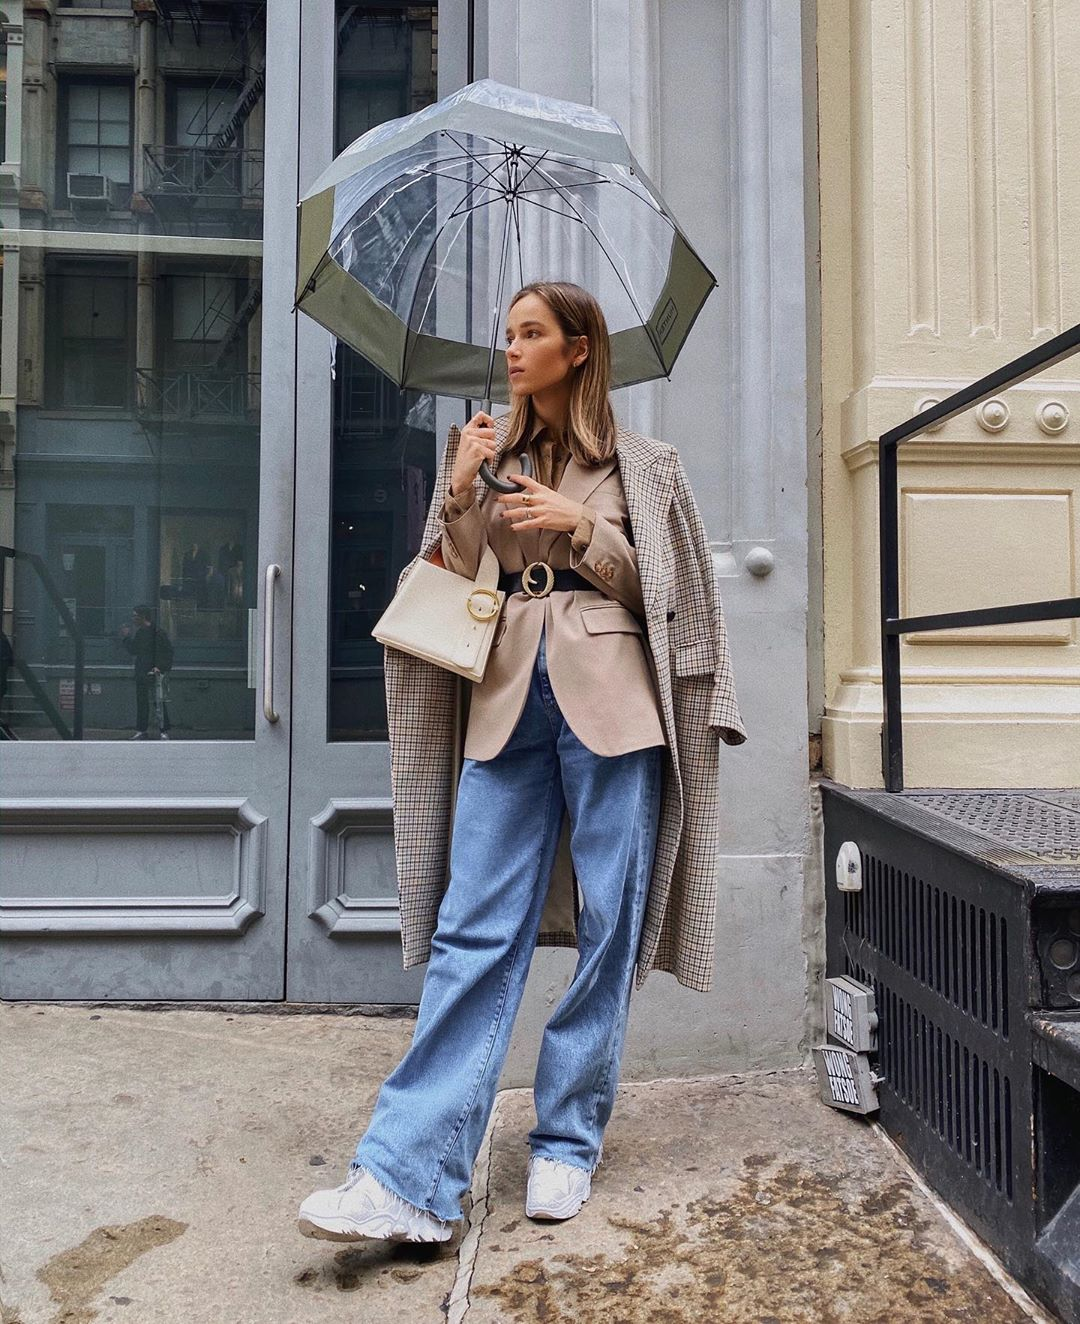 How to Look Chic On a Rainy Day